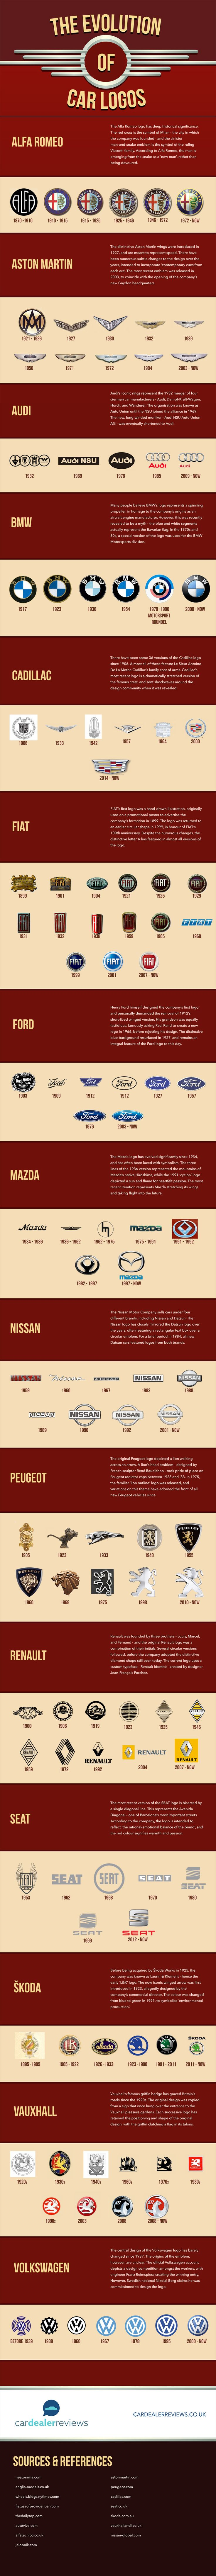 Infographic: The Fascinating Evolution Of Car Brand Logos - DesignTAXI.com